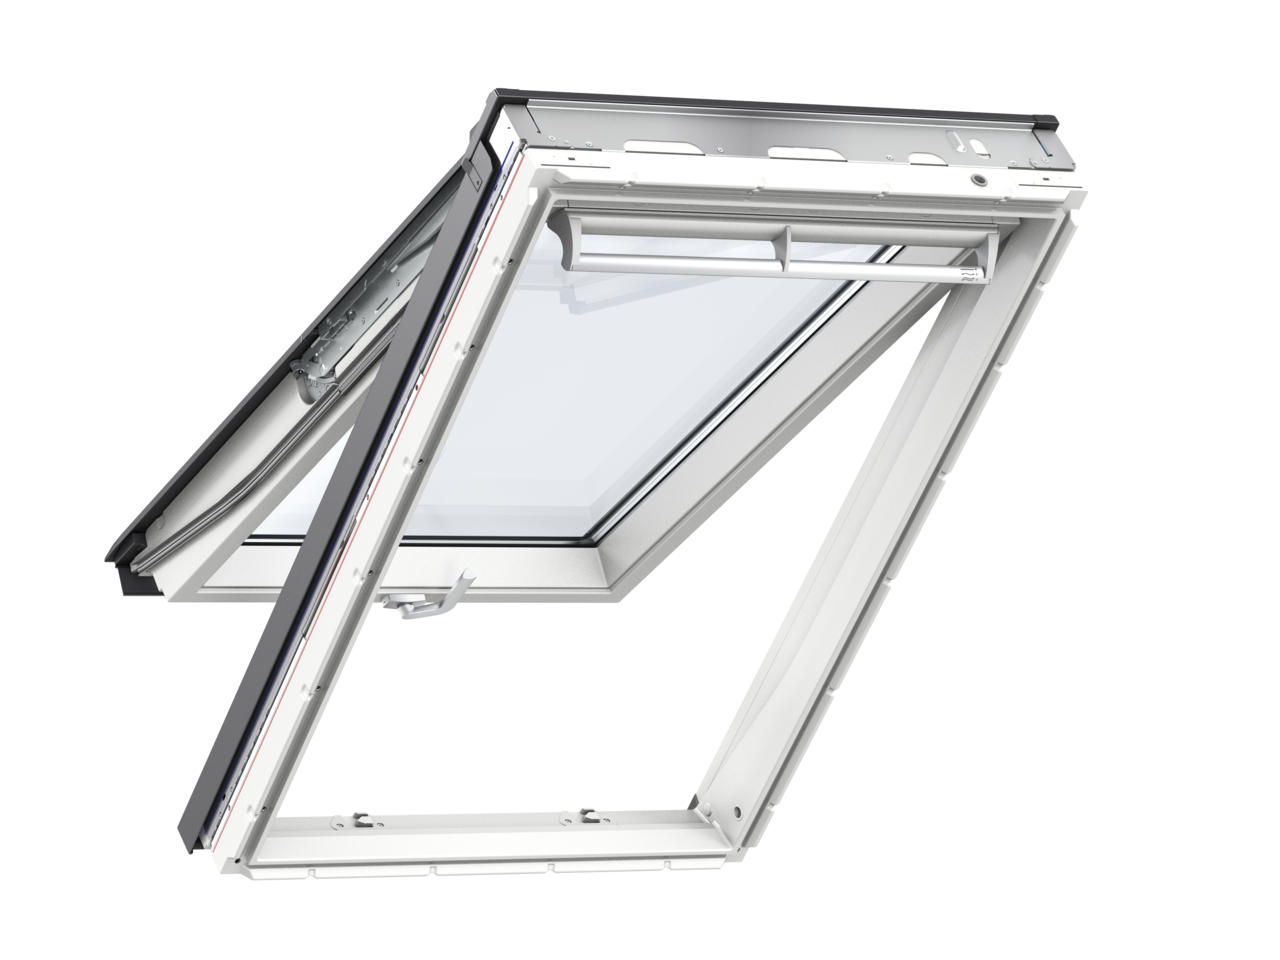 Velux GPU CK06 550 x 1180mm Top Hung 62Pane Roof Window - White Polyurethane